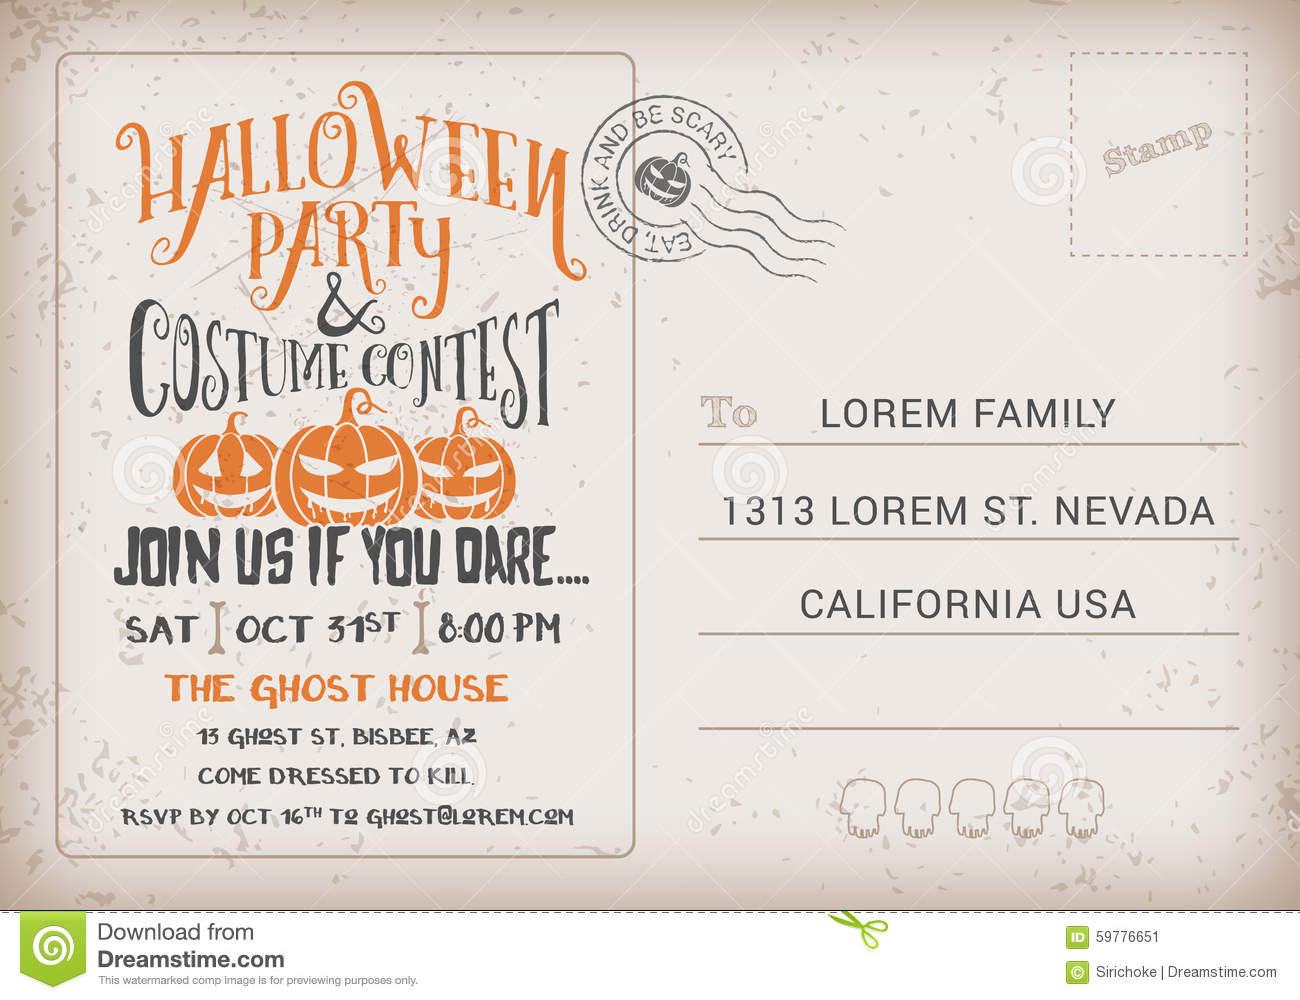 Halloween Party and Costume Contest Invitation Template. Halloween ...